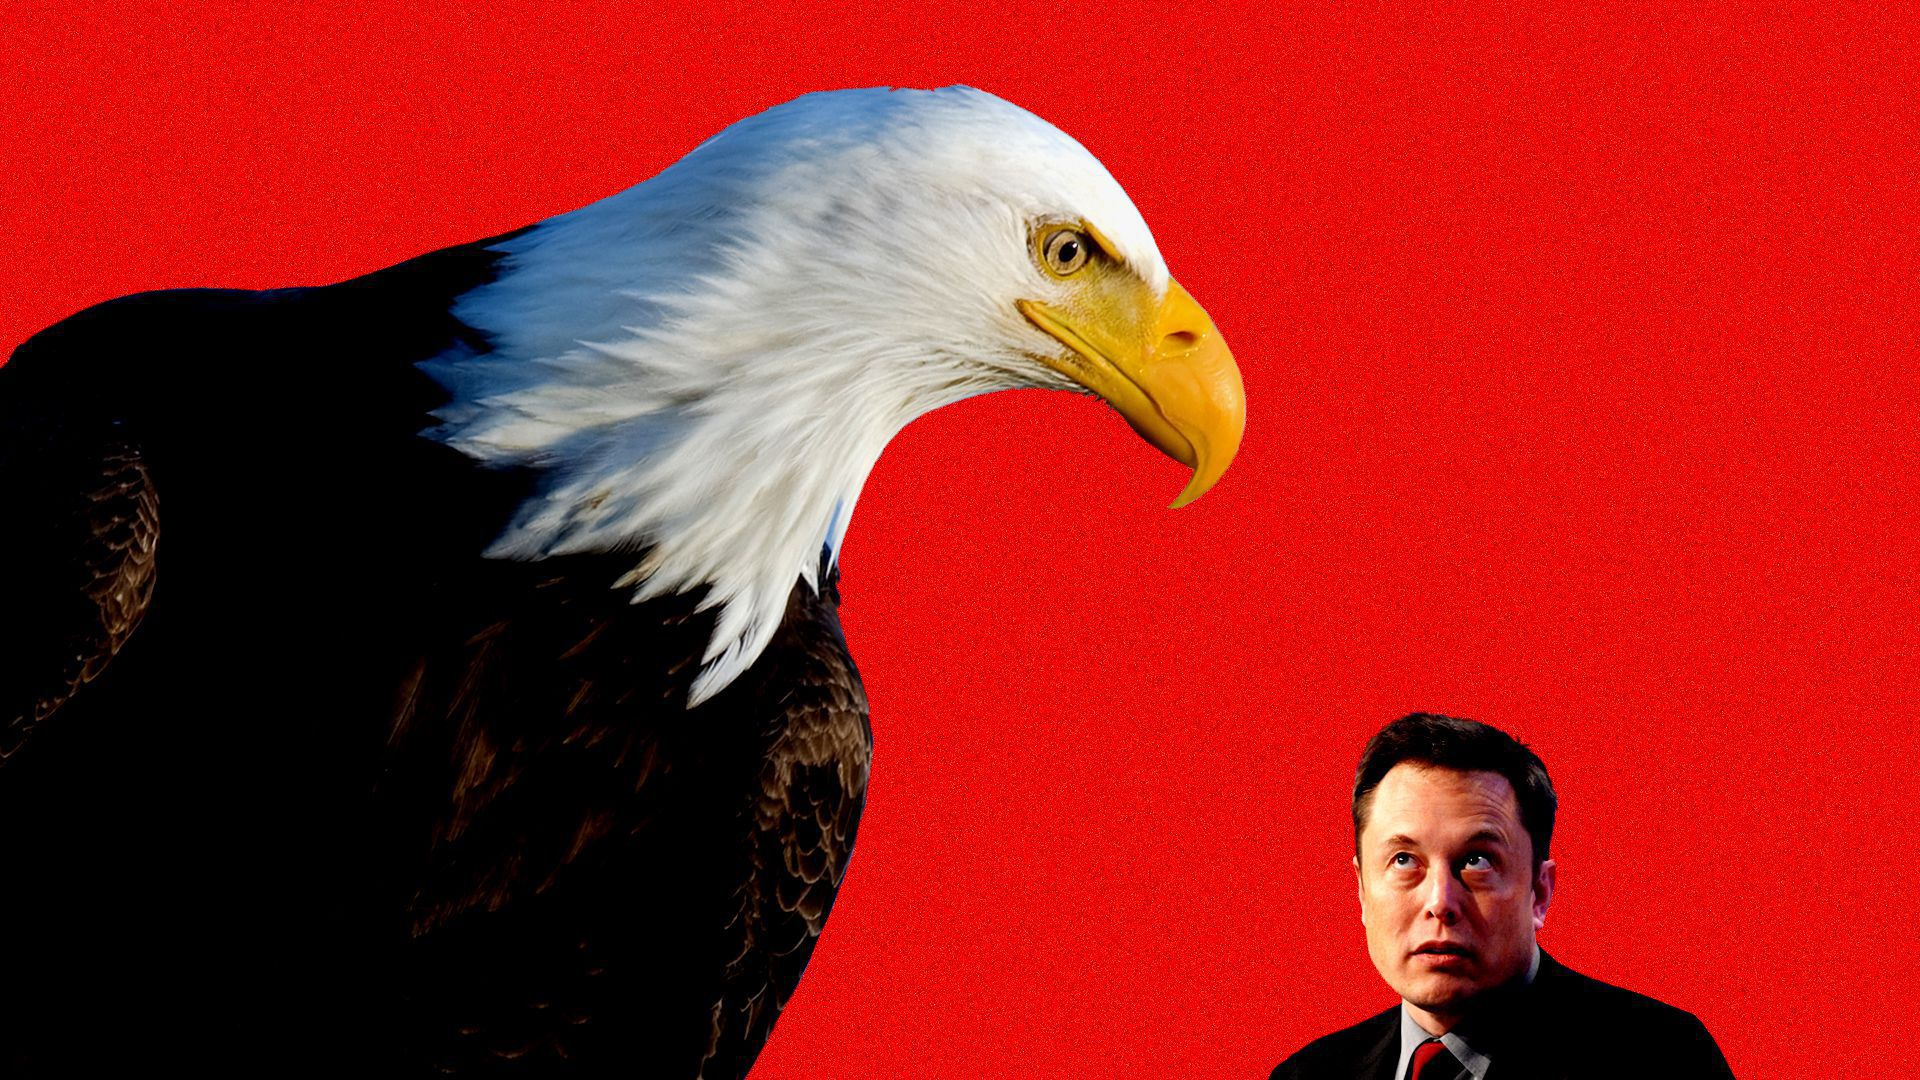 In this illustration, a giant bald eagle stands over Tesla CEO Elon Musk in front of a red background.